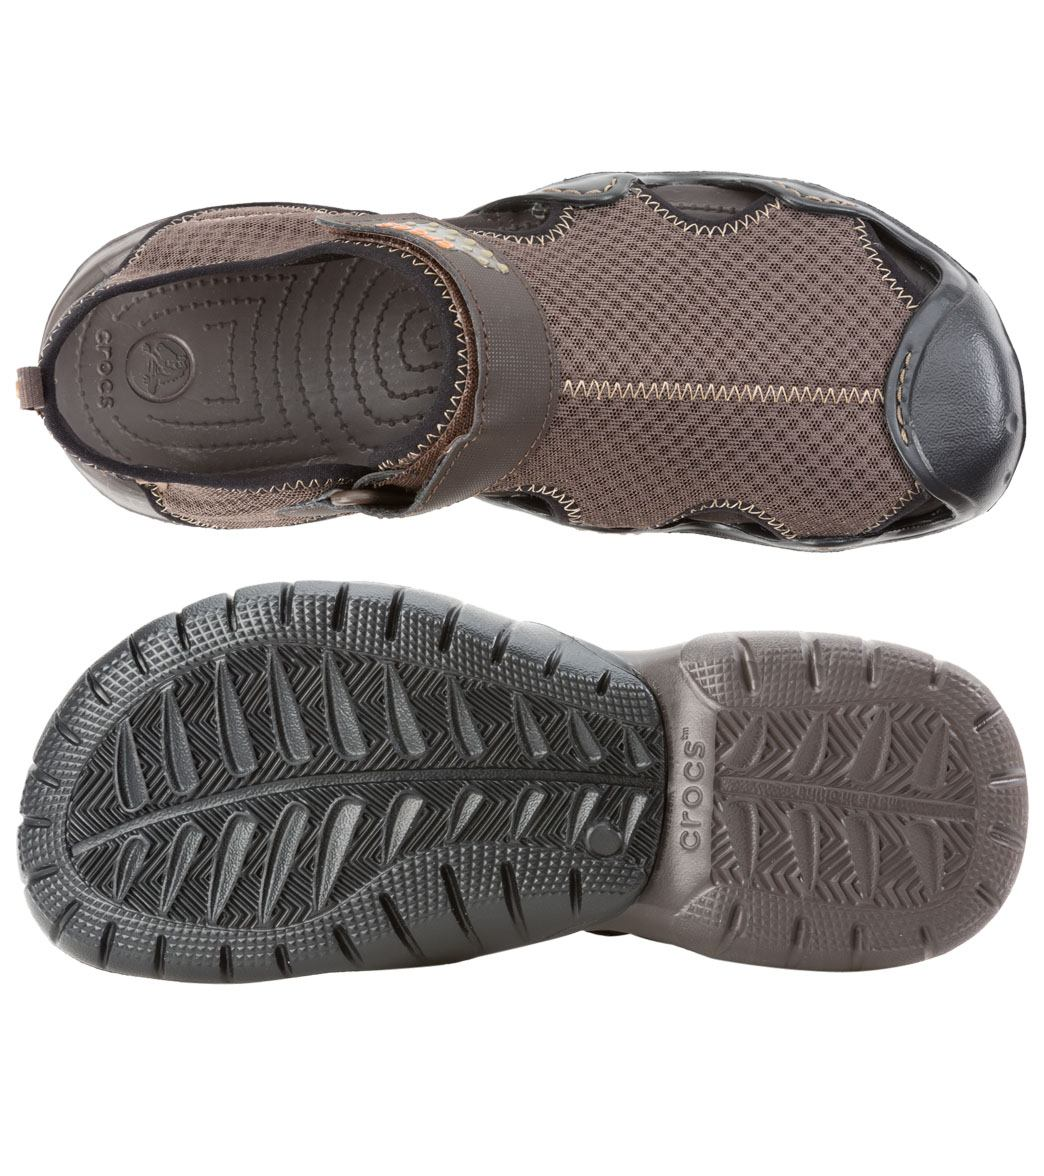 caceb6ff01b5 Crocs Men s Swiftwater Sandal at SwimOutlet.com - Free Shipping